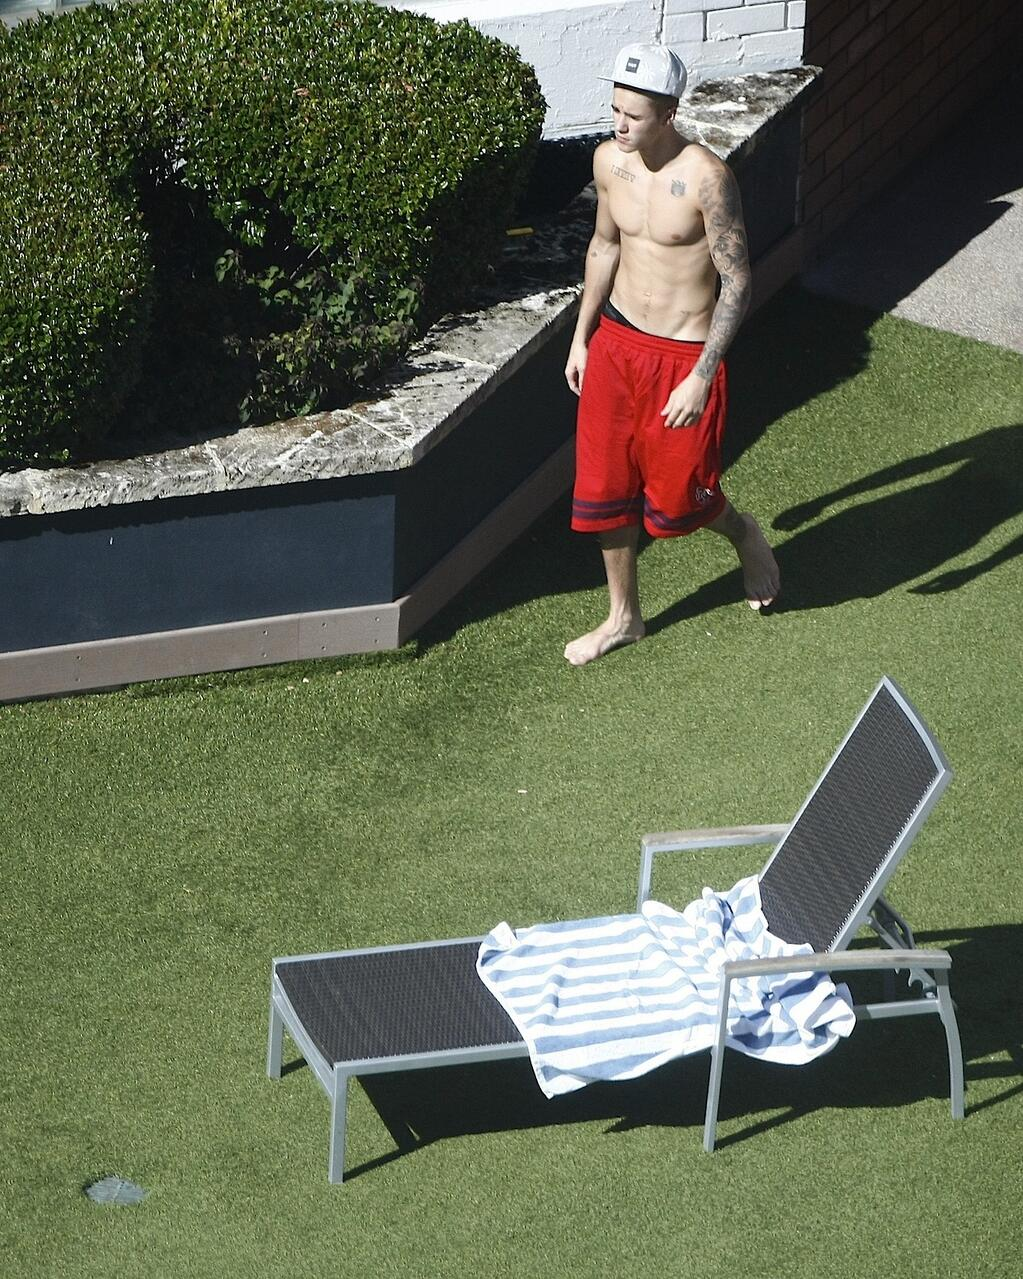 Justin bieber hanging by the pool in perth australia dec for Pool show 2015 perth